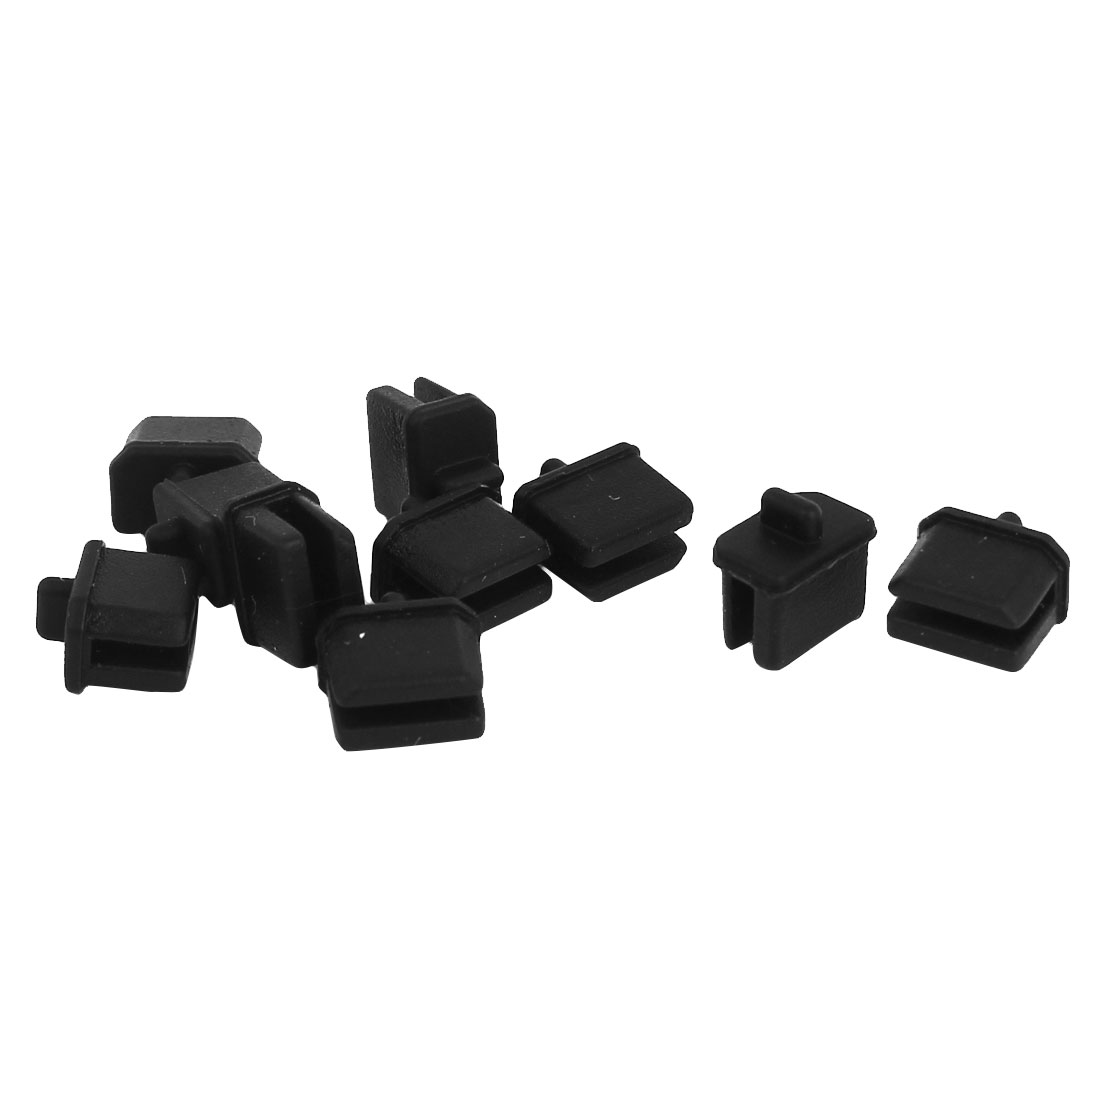 10 Pcs Black Anti Dust Cover Cap Protector for Mini Displayport Thunderbolt